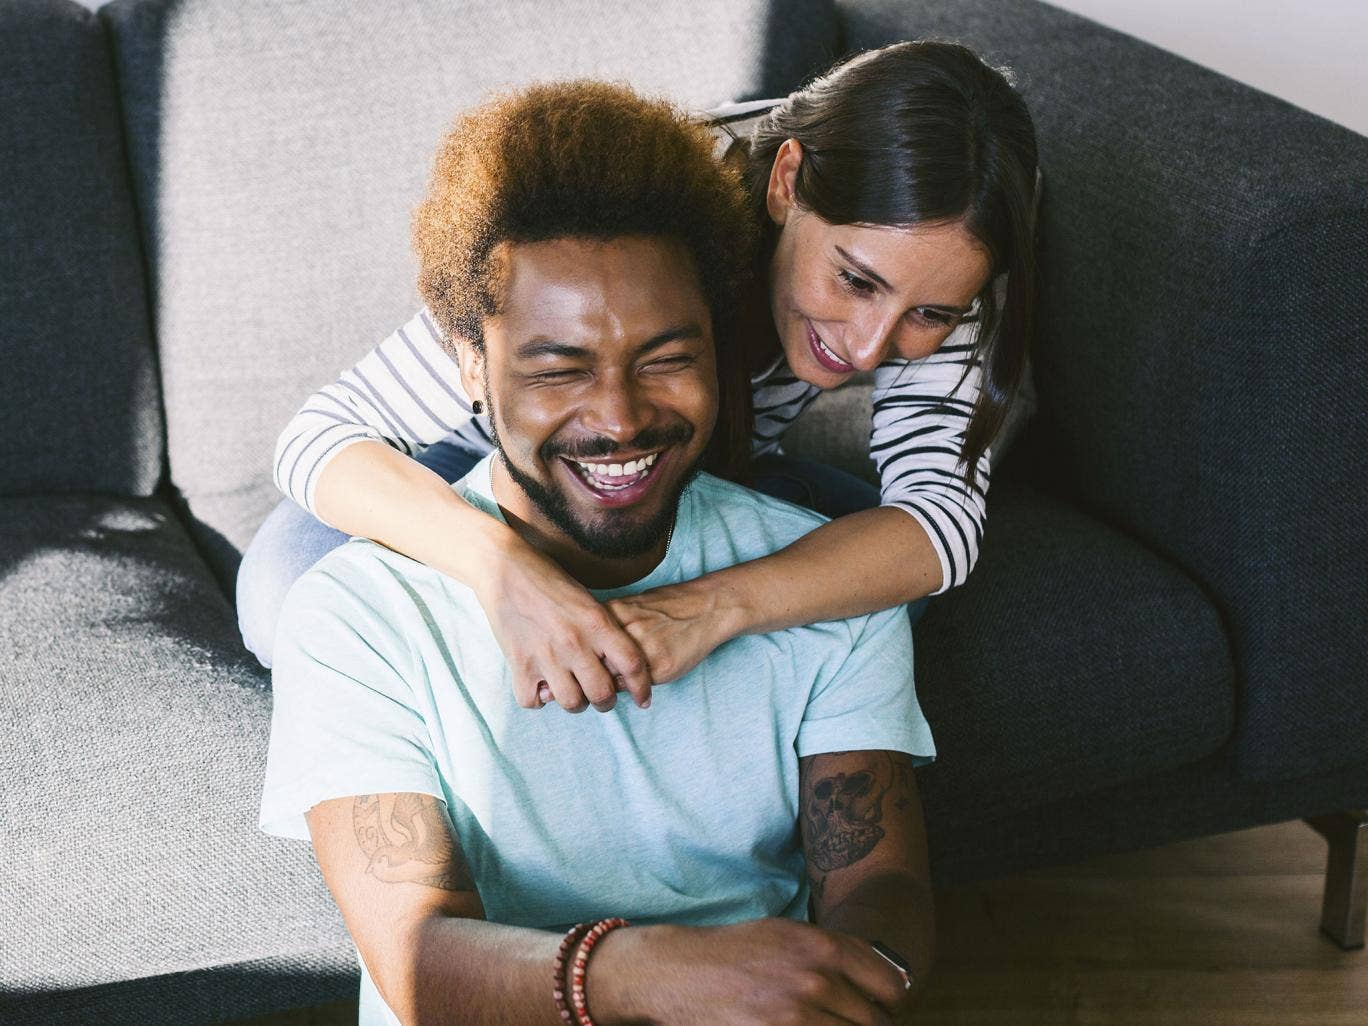 Couples who laugh together stay together, according to the research